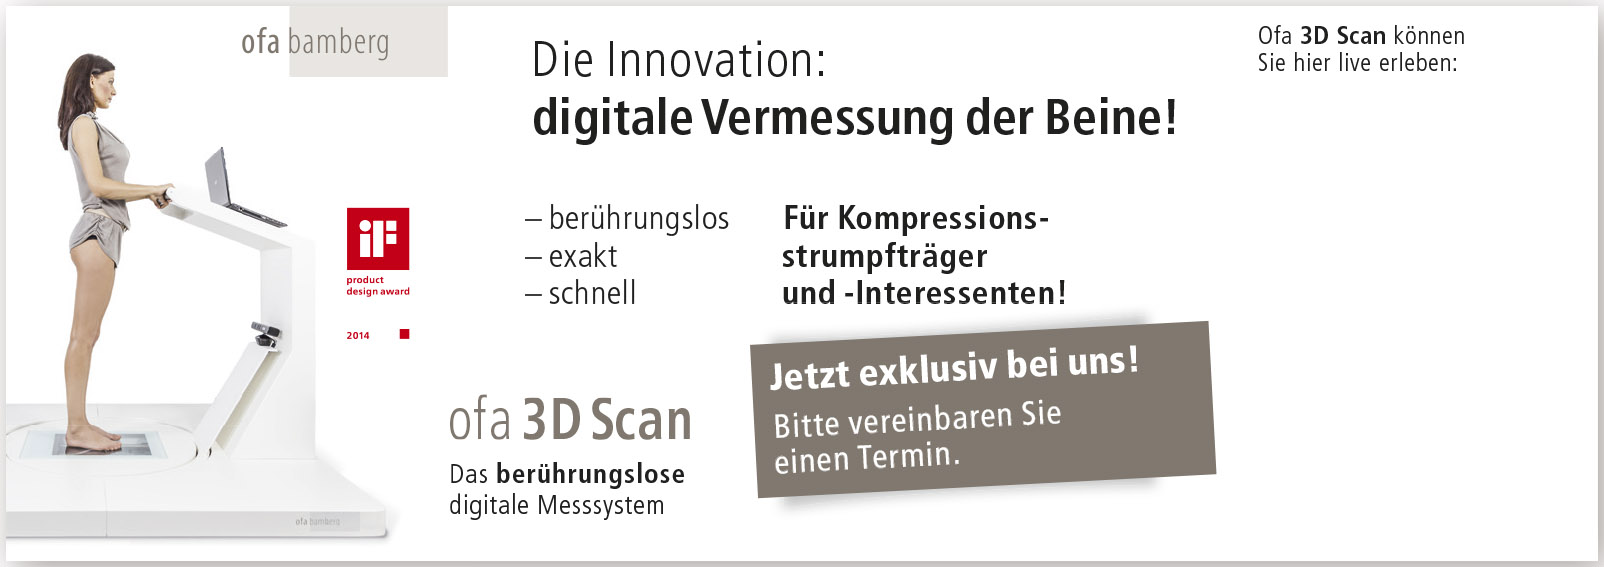 Die Innovation digitale Vermessung der Beine!